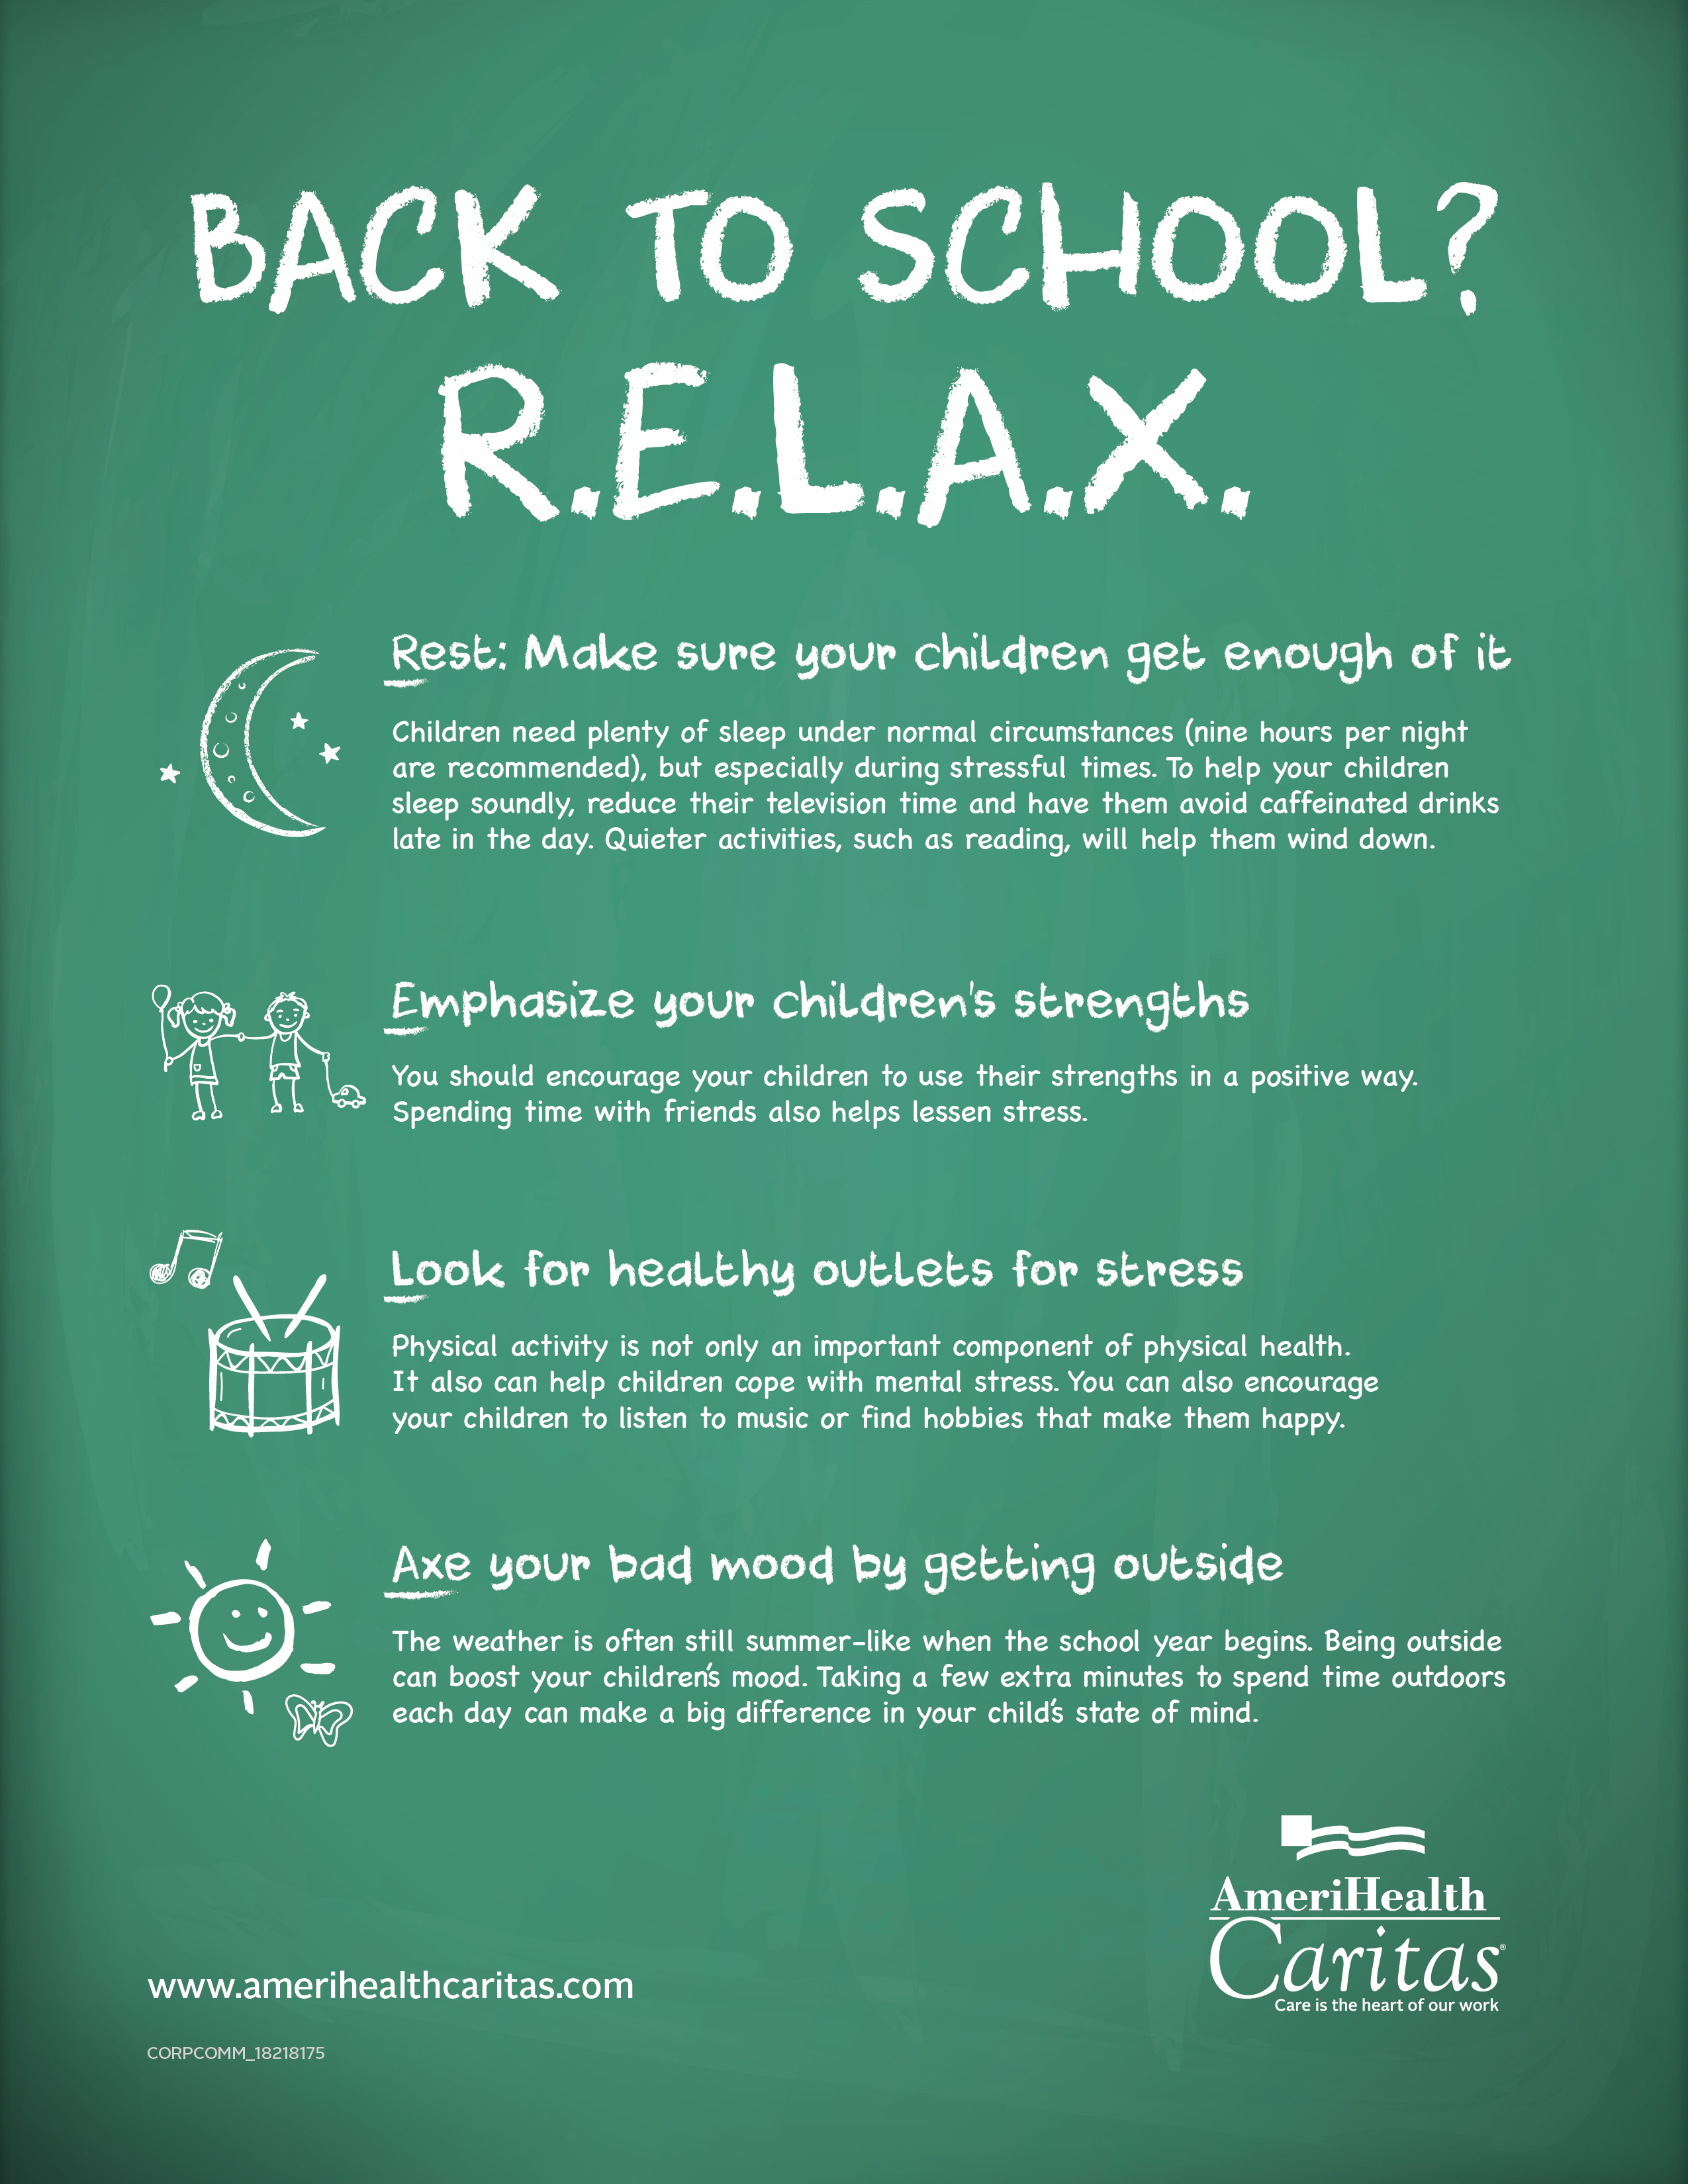 Going Back to School? R.E.L.A.X. | Business Wire